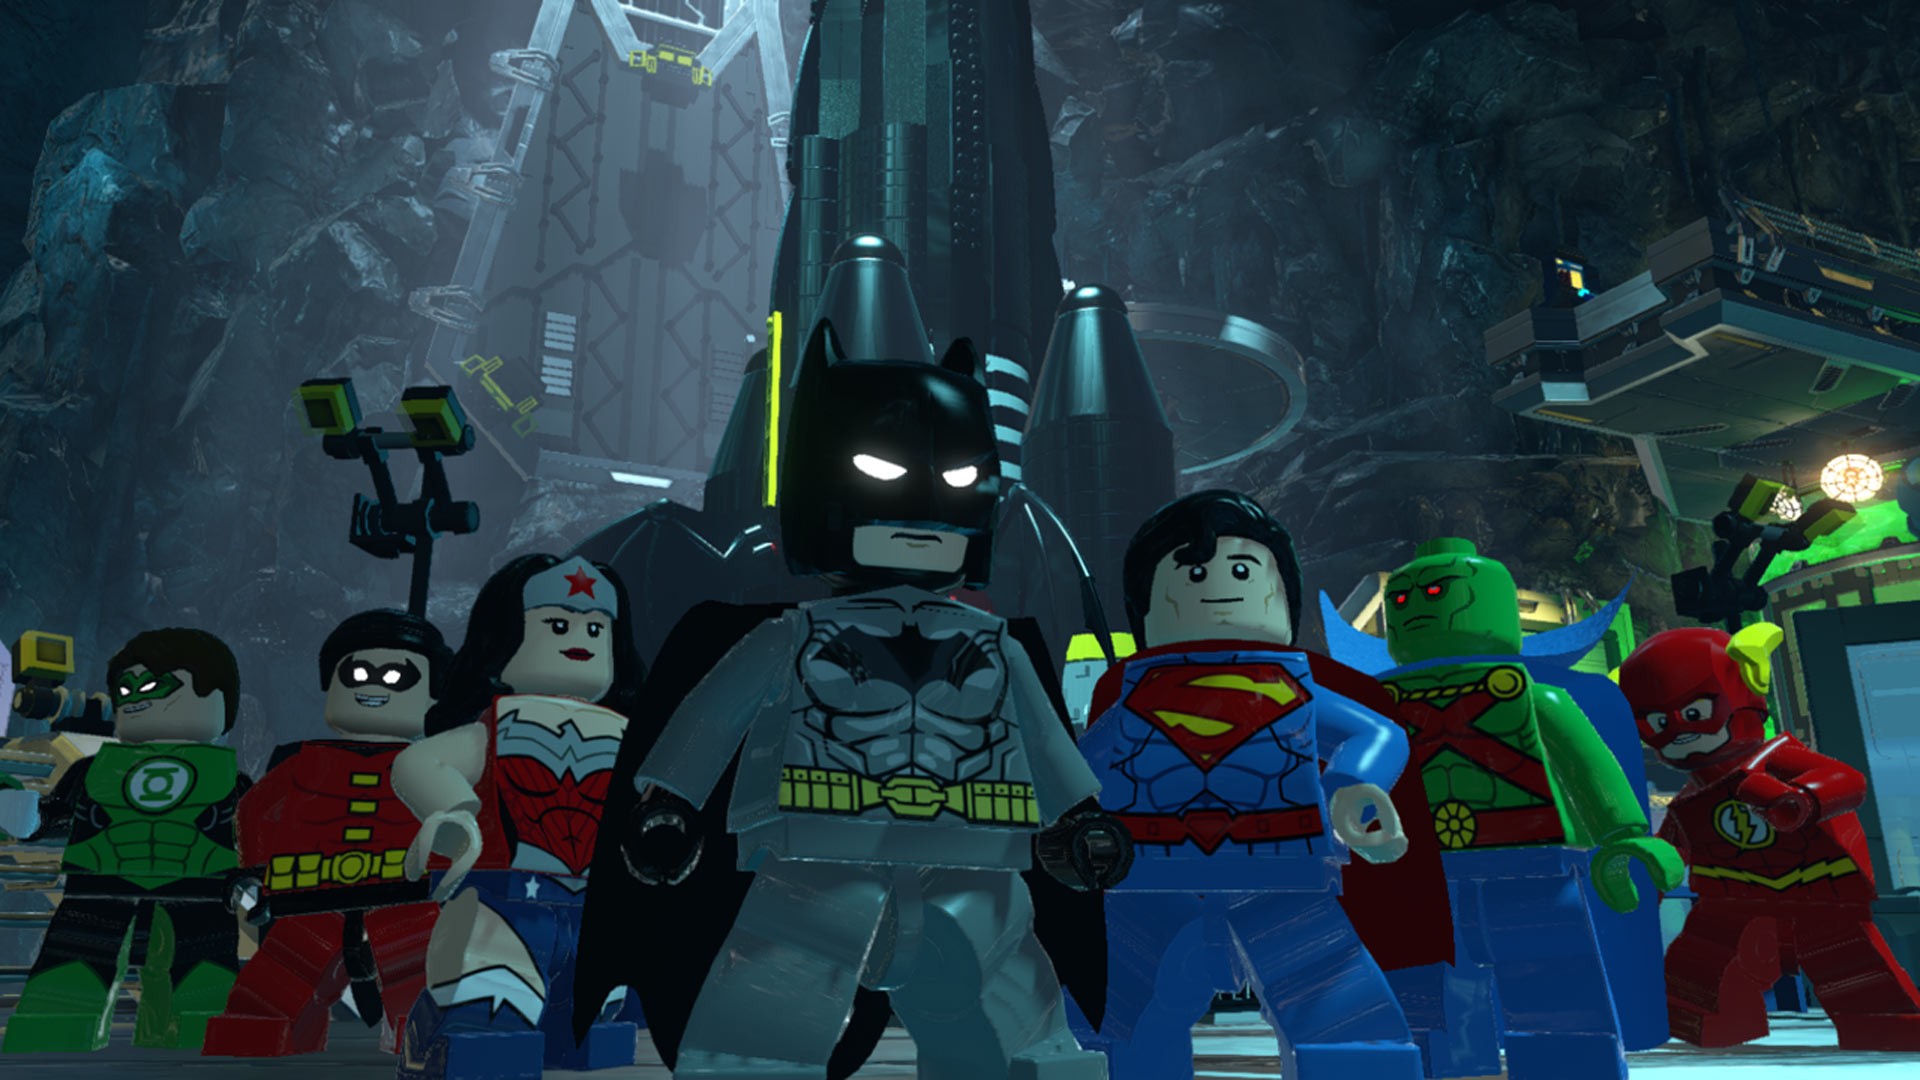 LEGO Batman Video Game